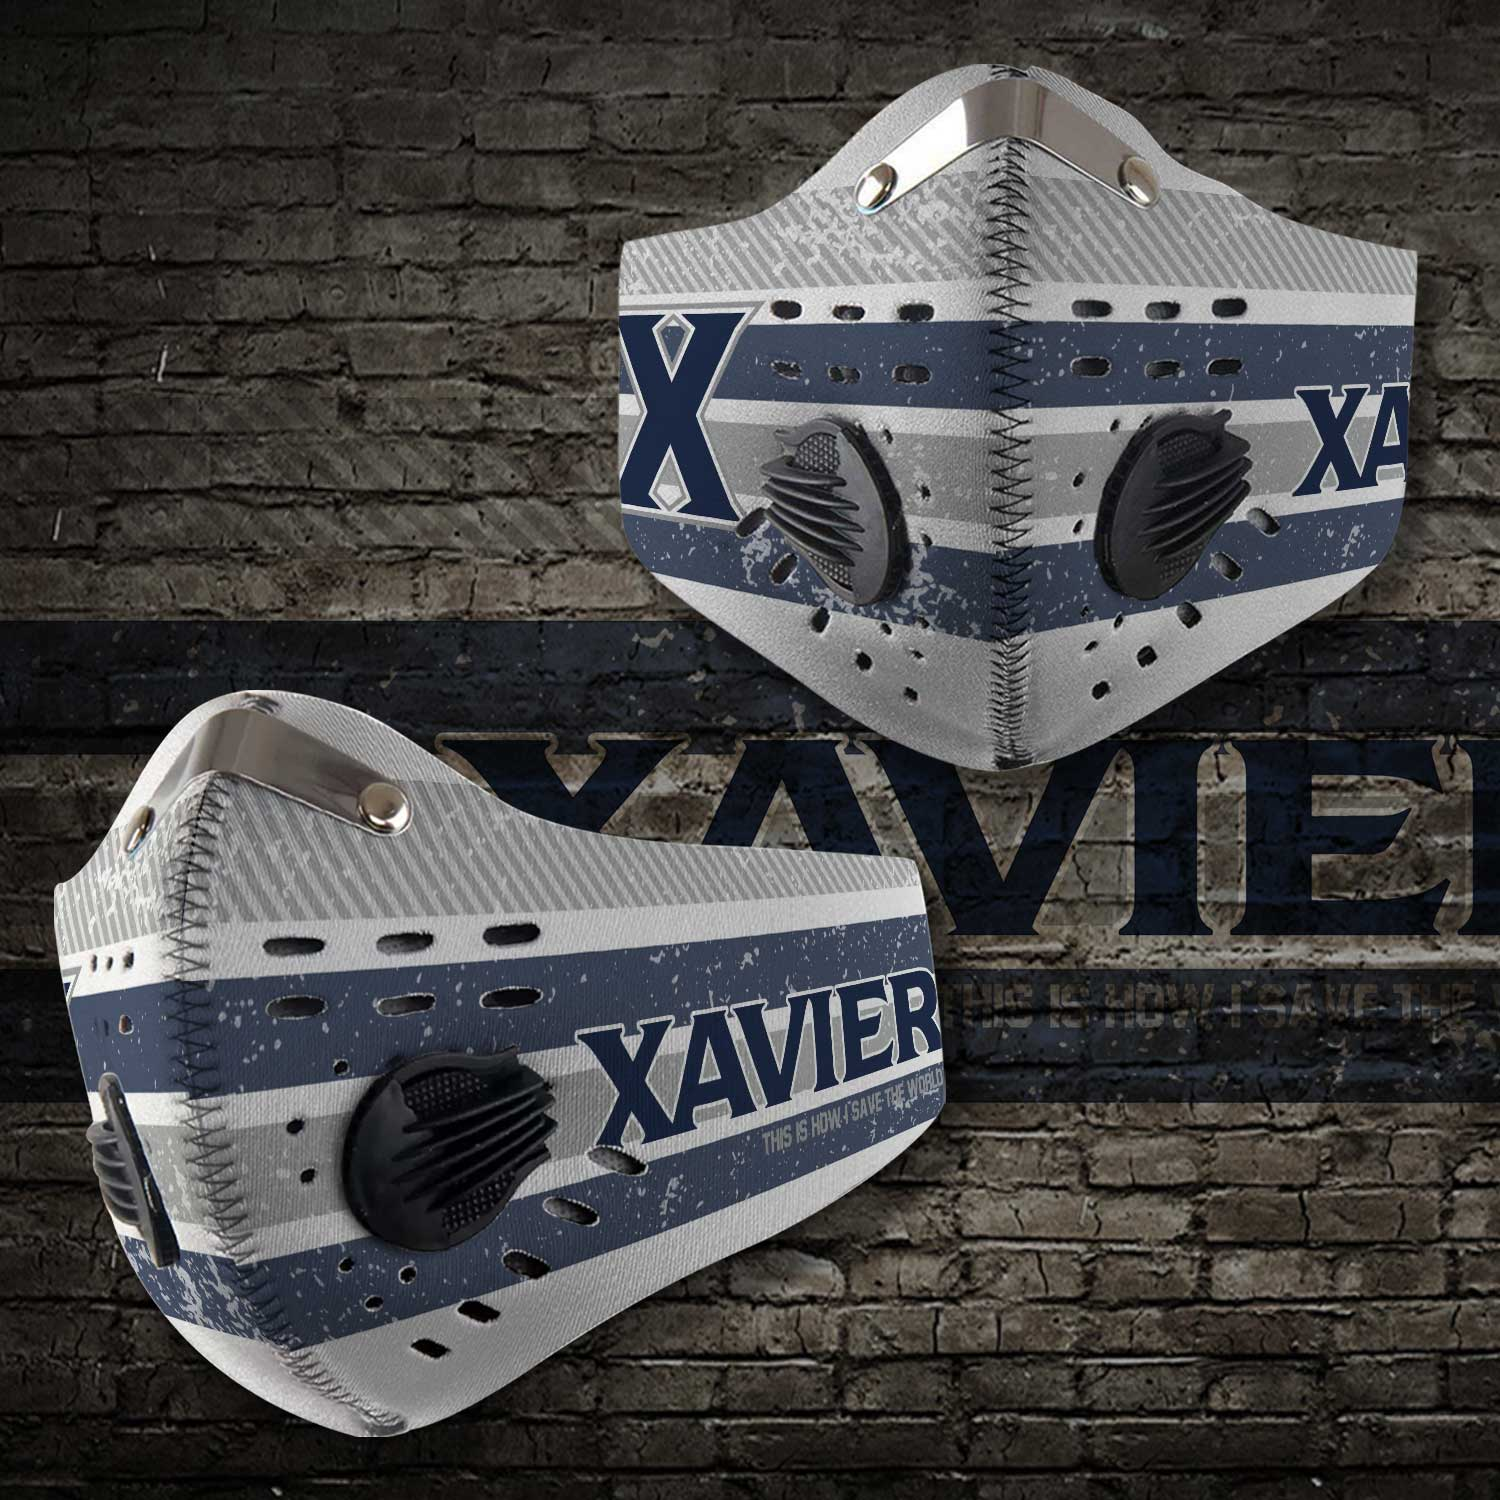 Xavier musketeers this is how i save the world carbon filter face mask 2